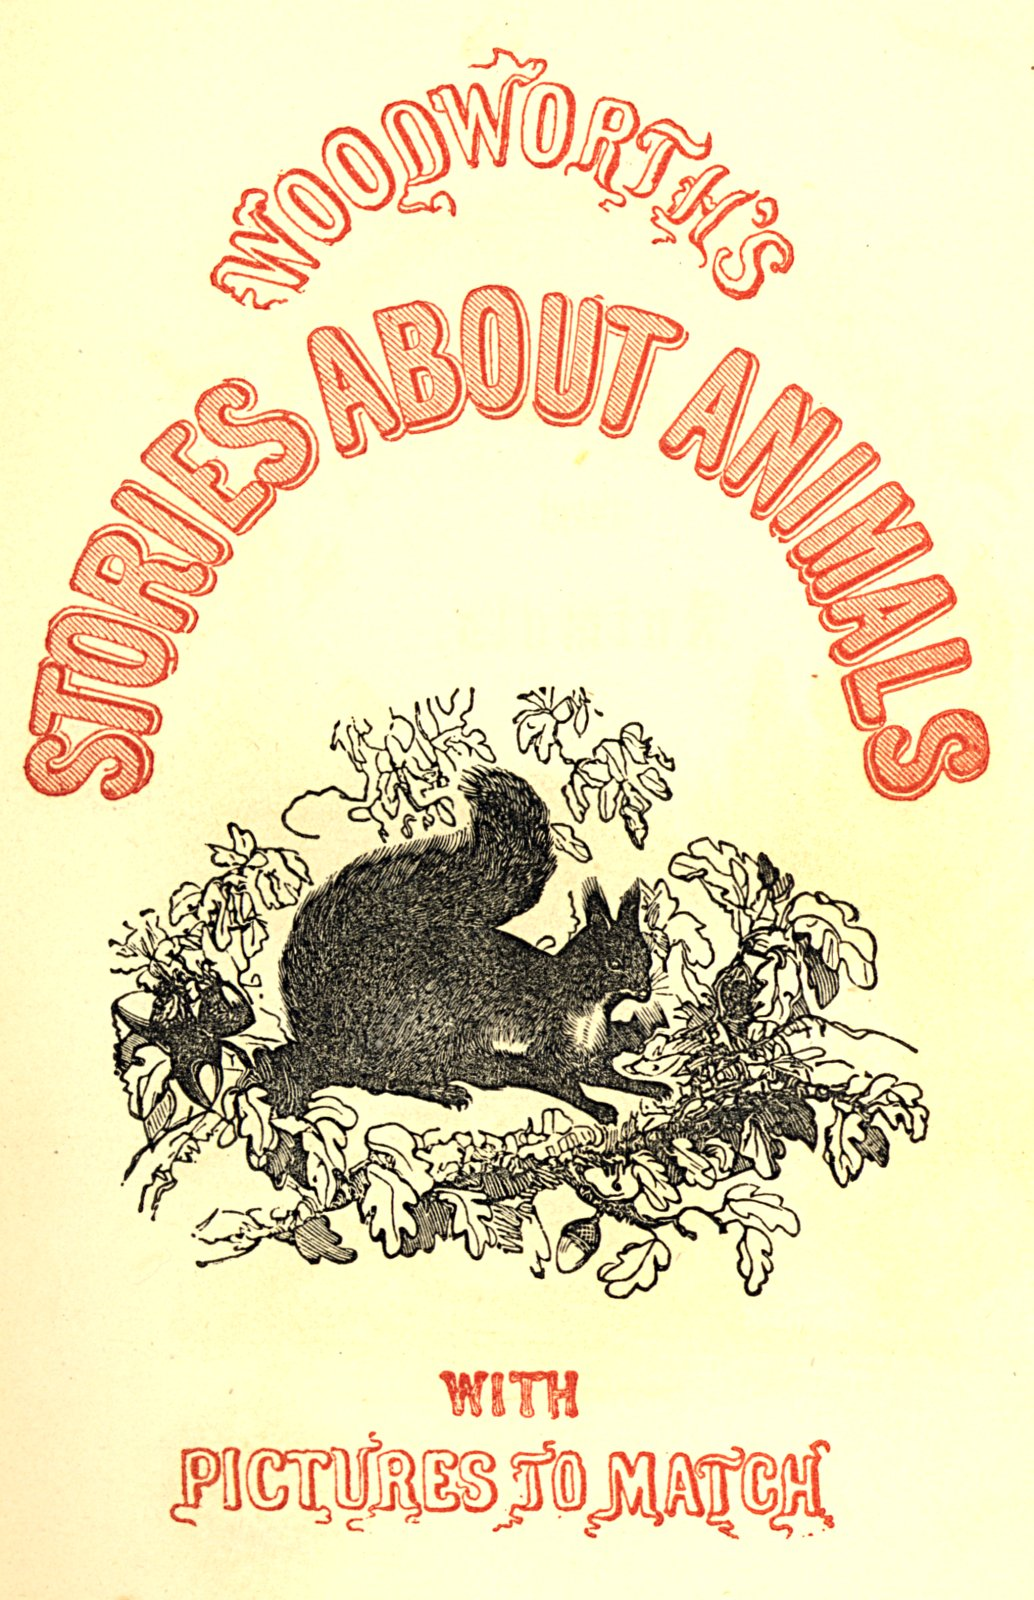 The project gutenberg ebook of stories about animals with pictures title page 2 fandeluxe Images